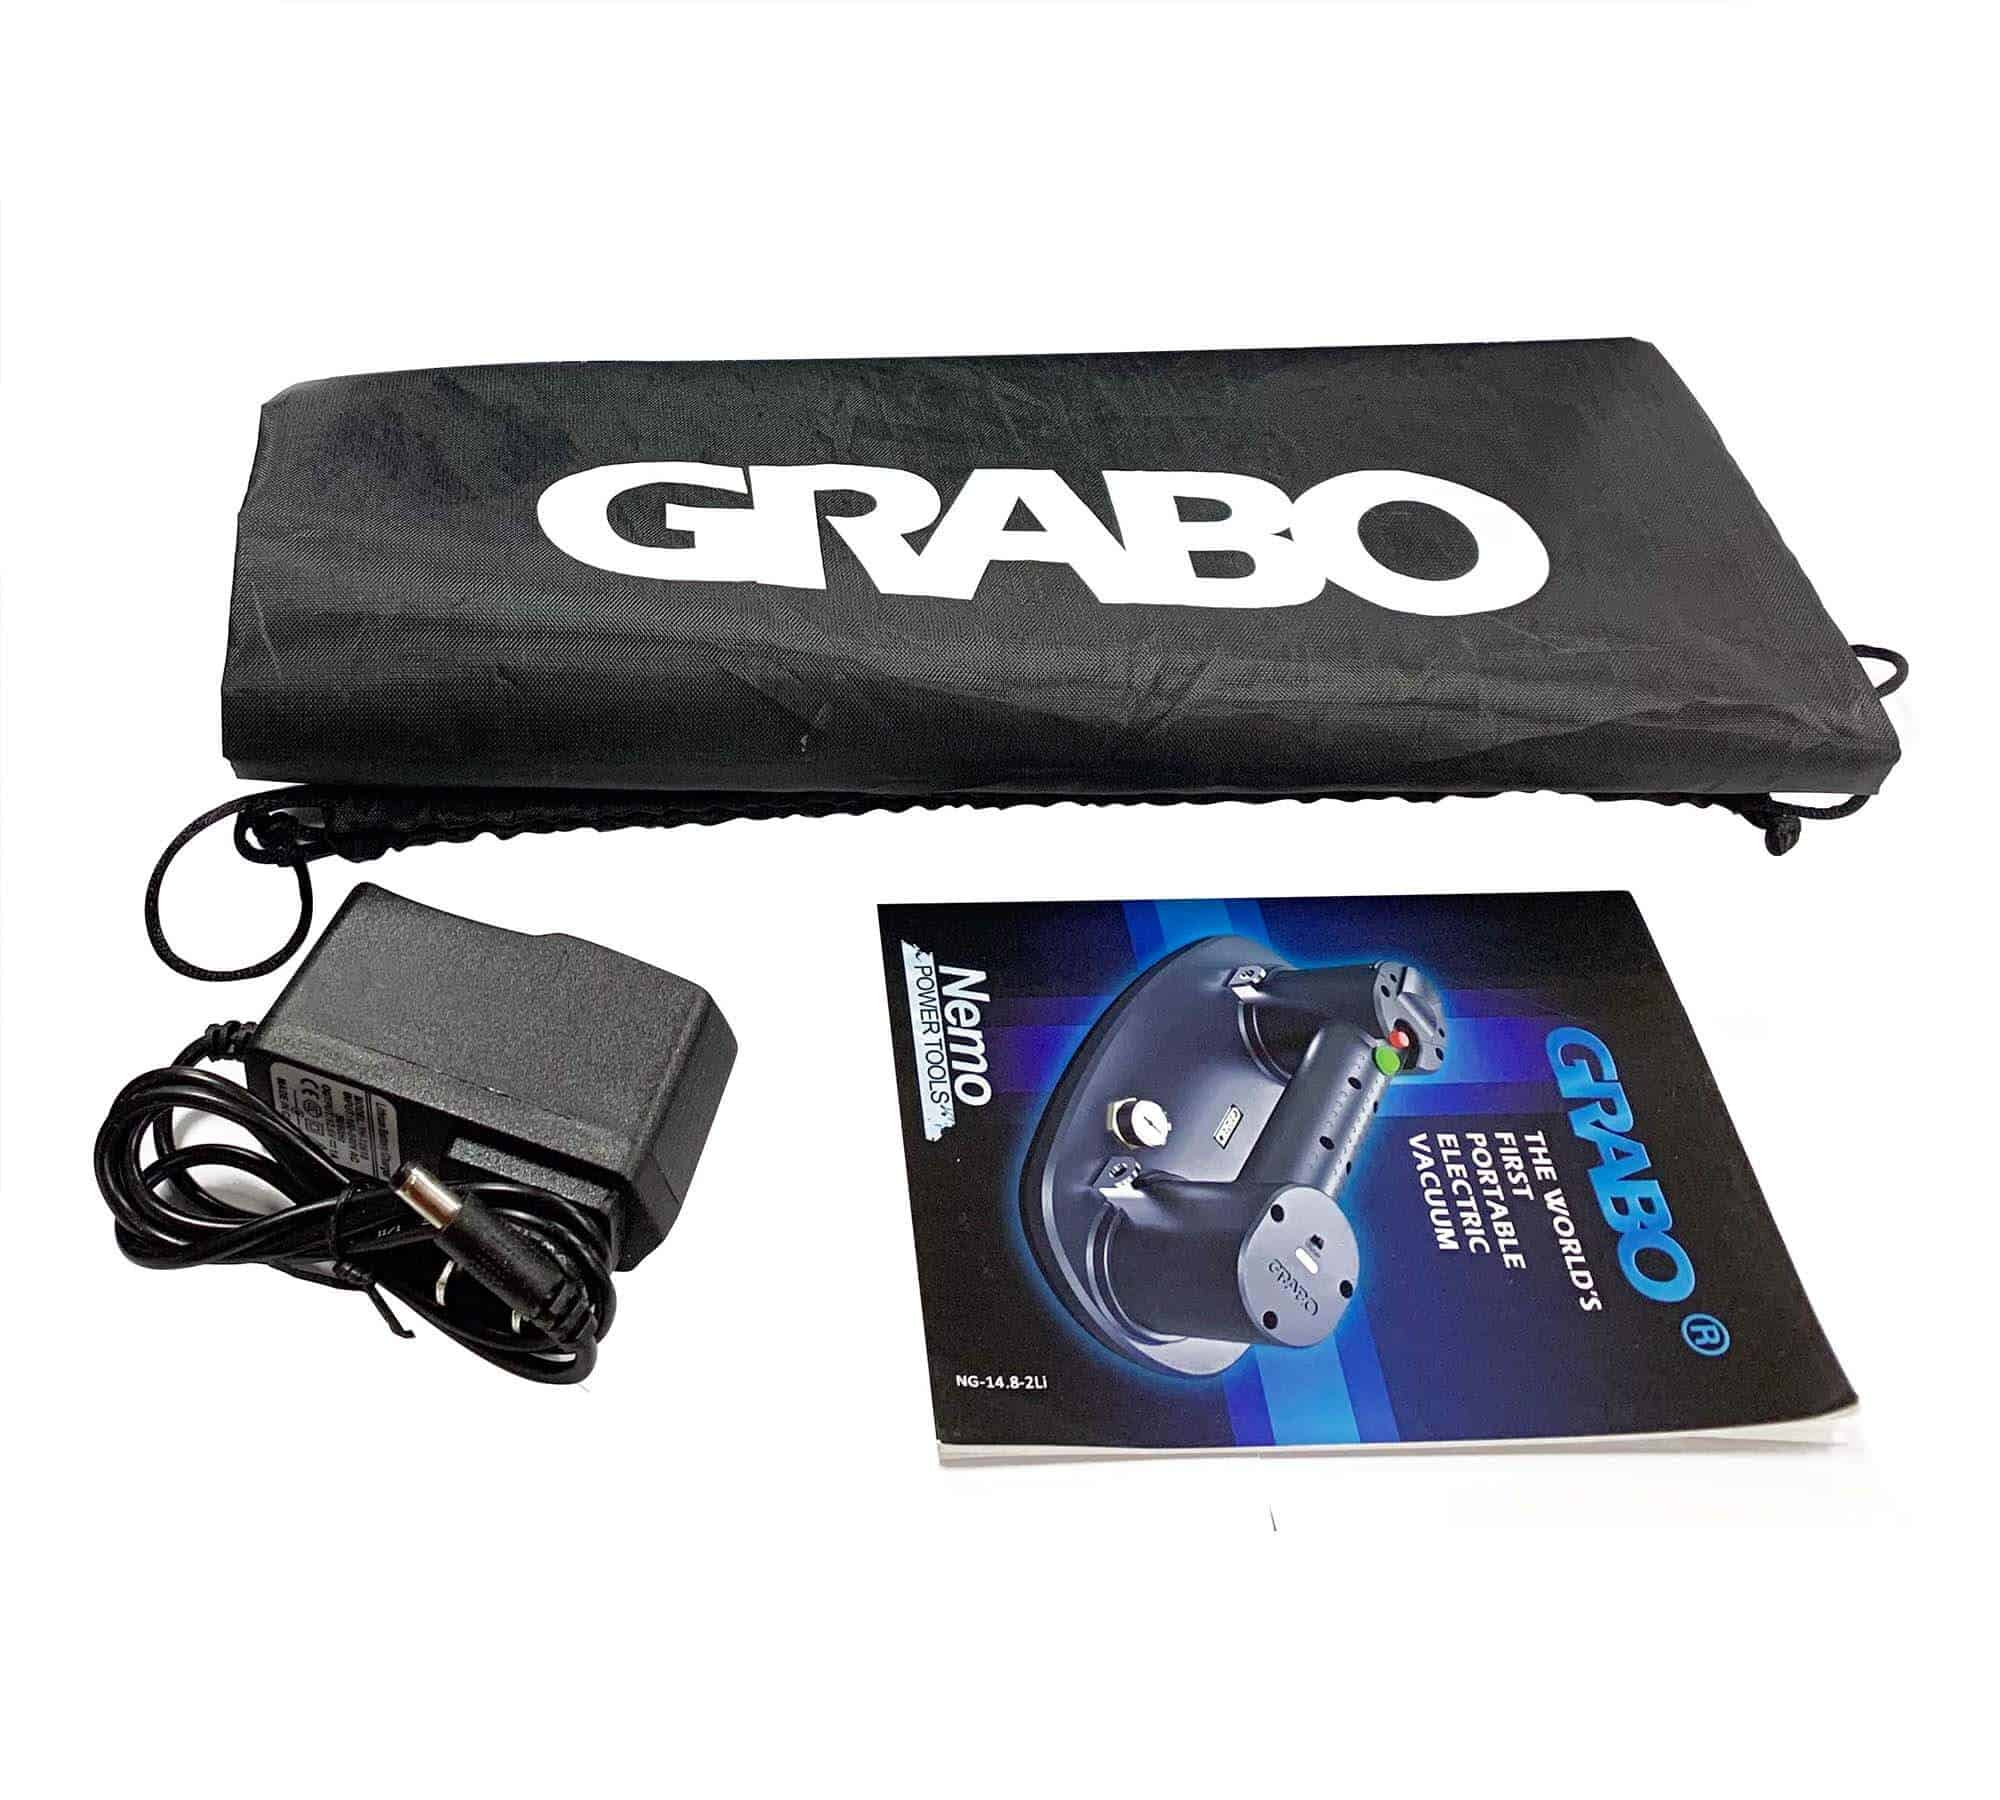 grabo h pack charger & book